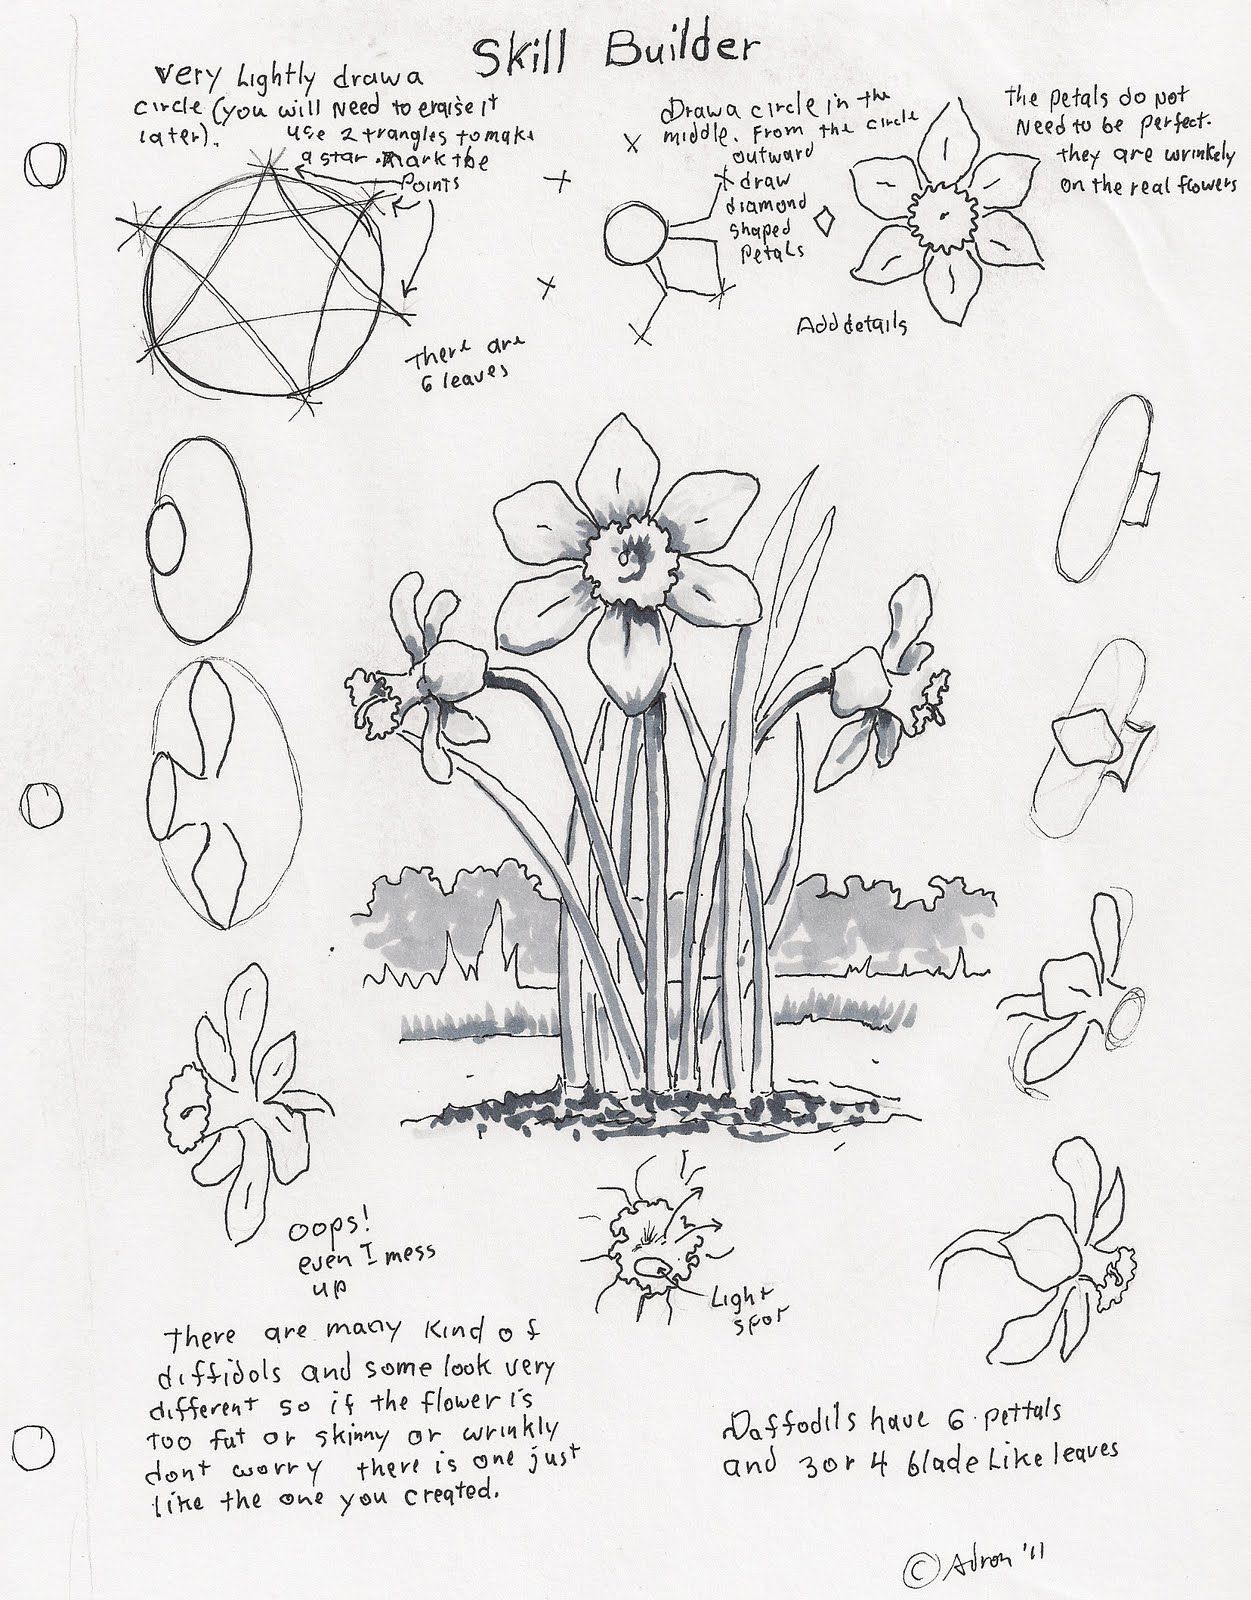 Adron's Art Lesson Plans: How To Draw A Daffodil, A Skill Builder For The